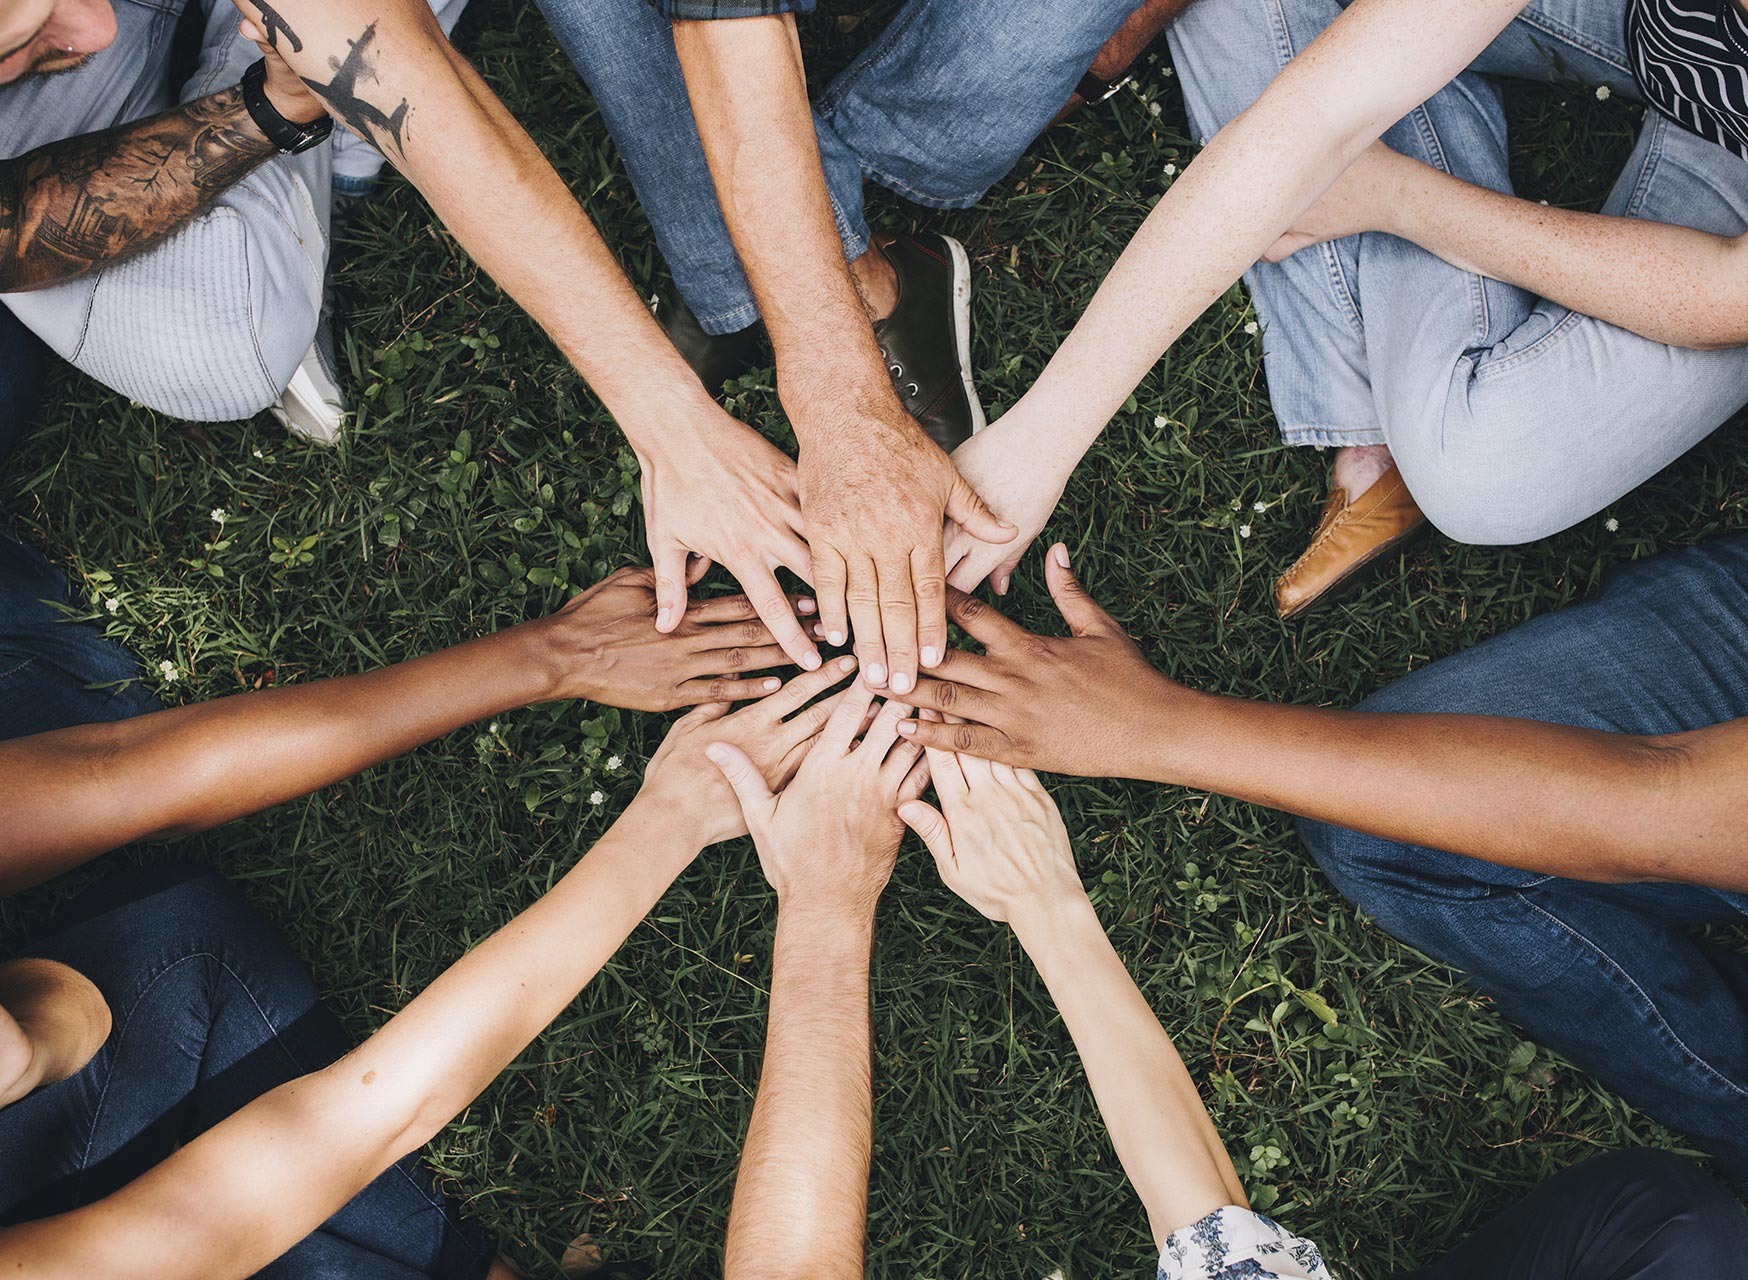 people-stacking-hands-together-in-the-park